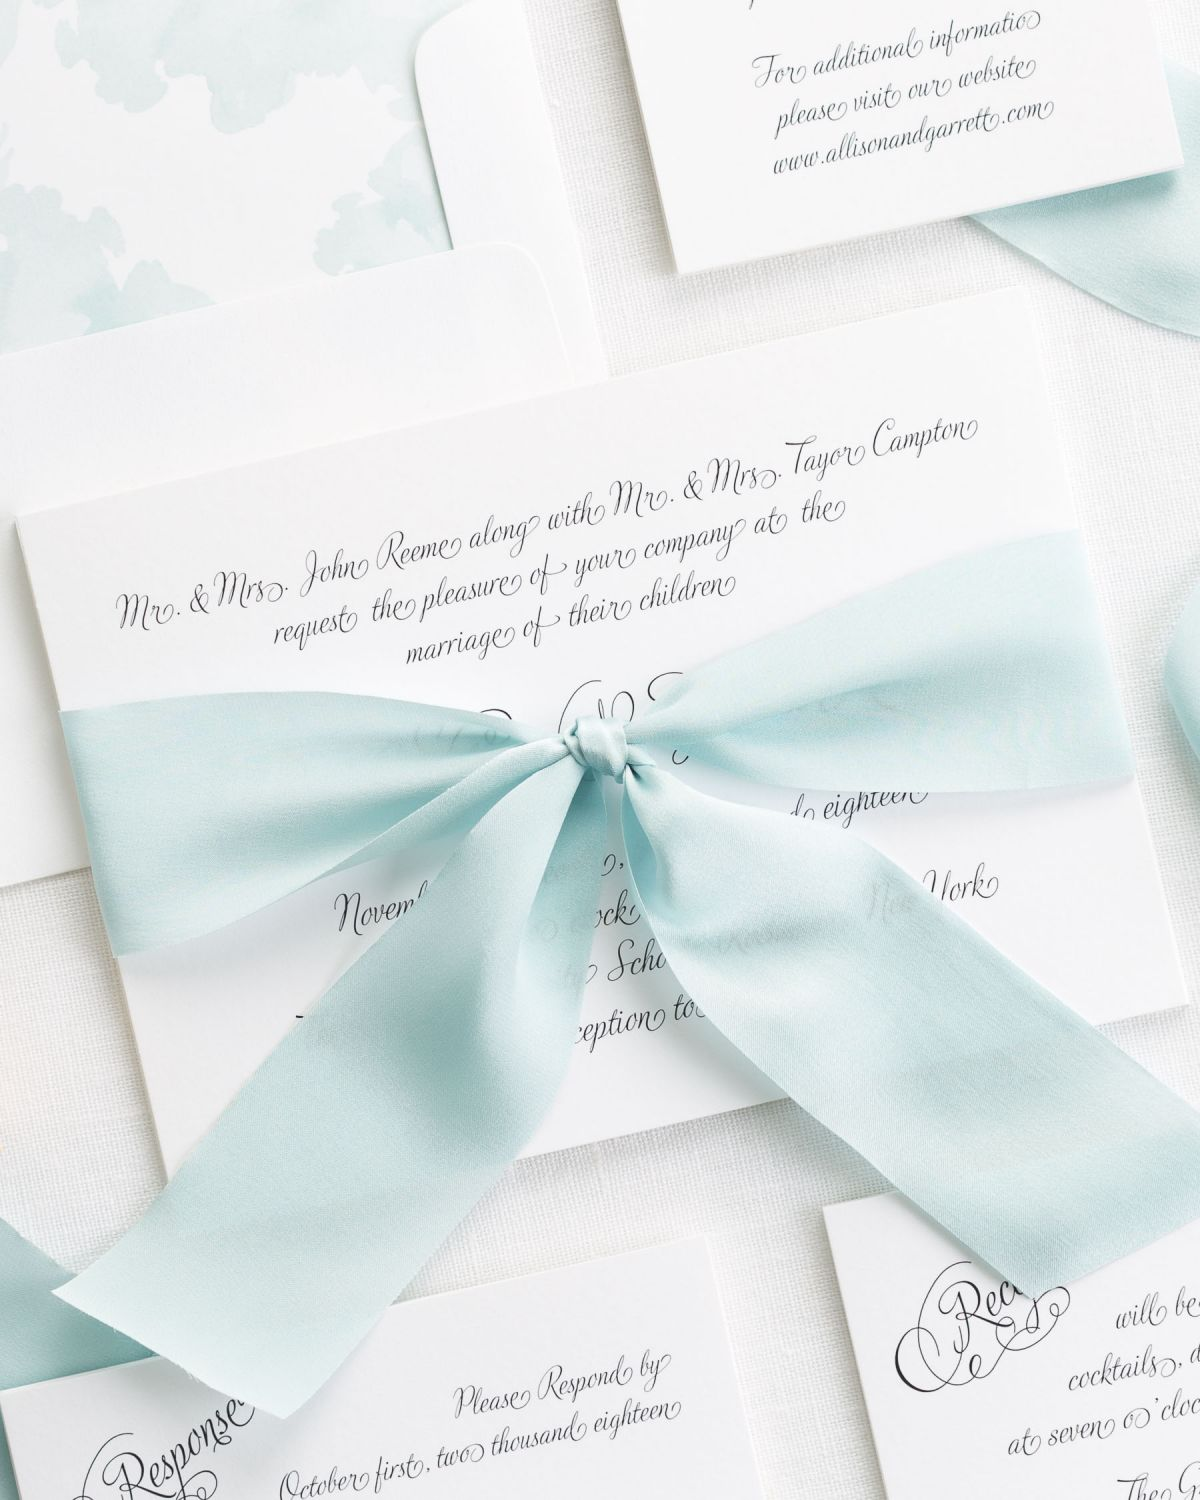 Fairytale Wedding Invitation in All Script on White Shimmer ...